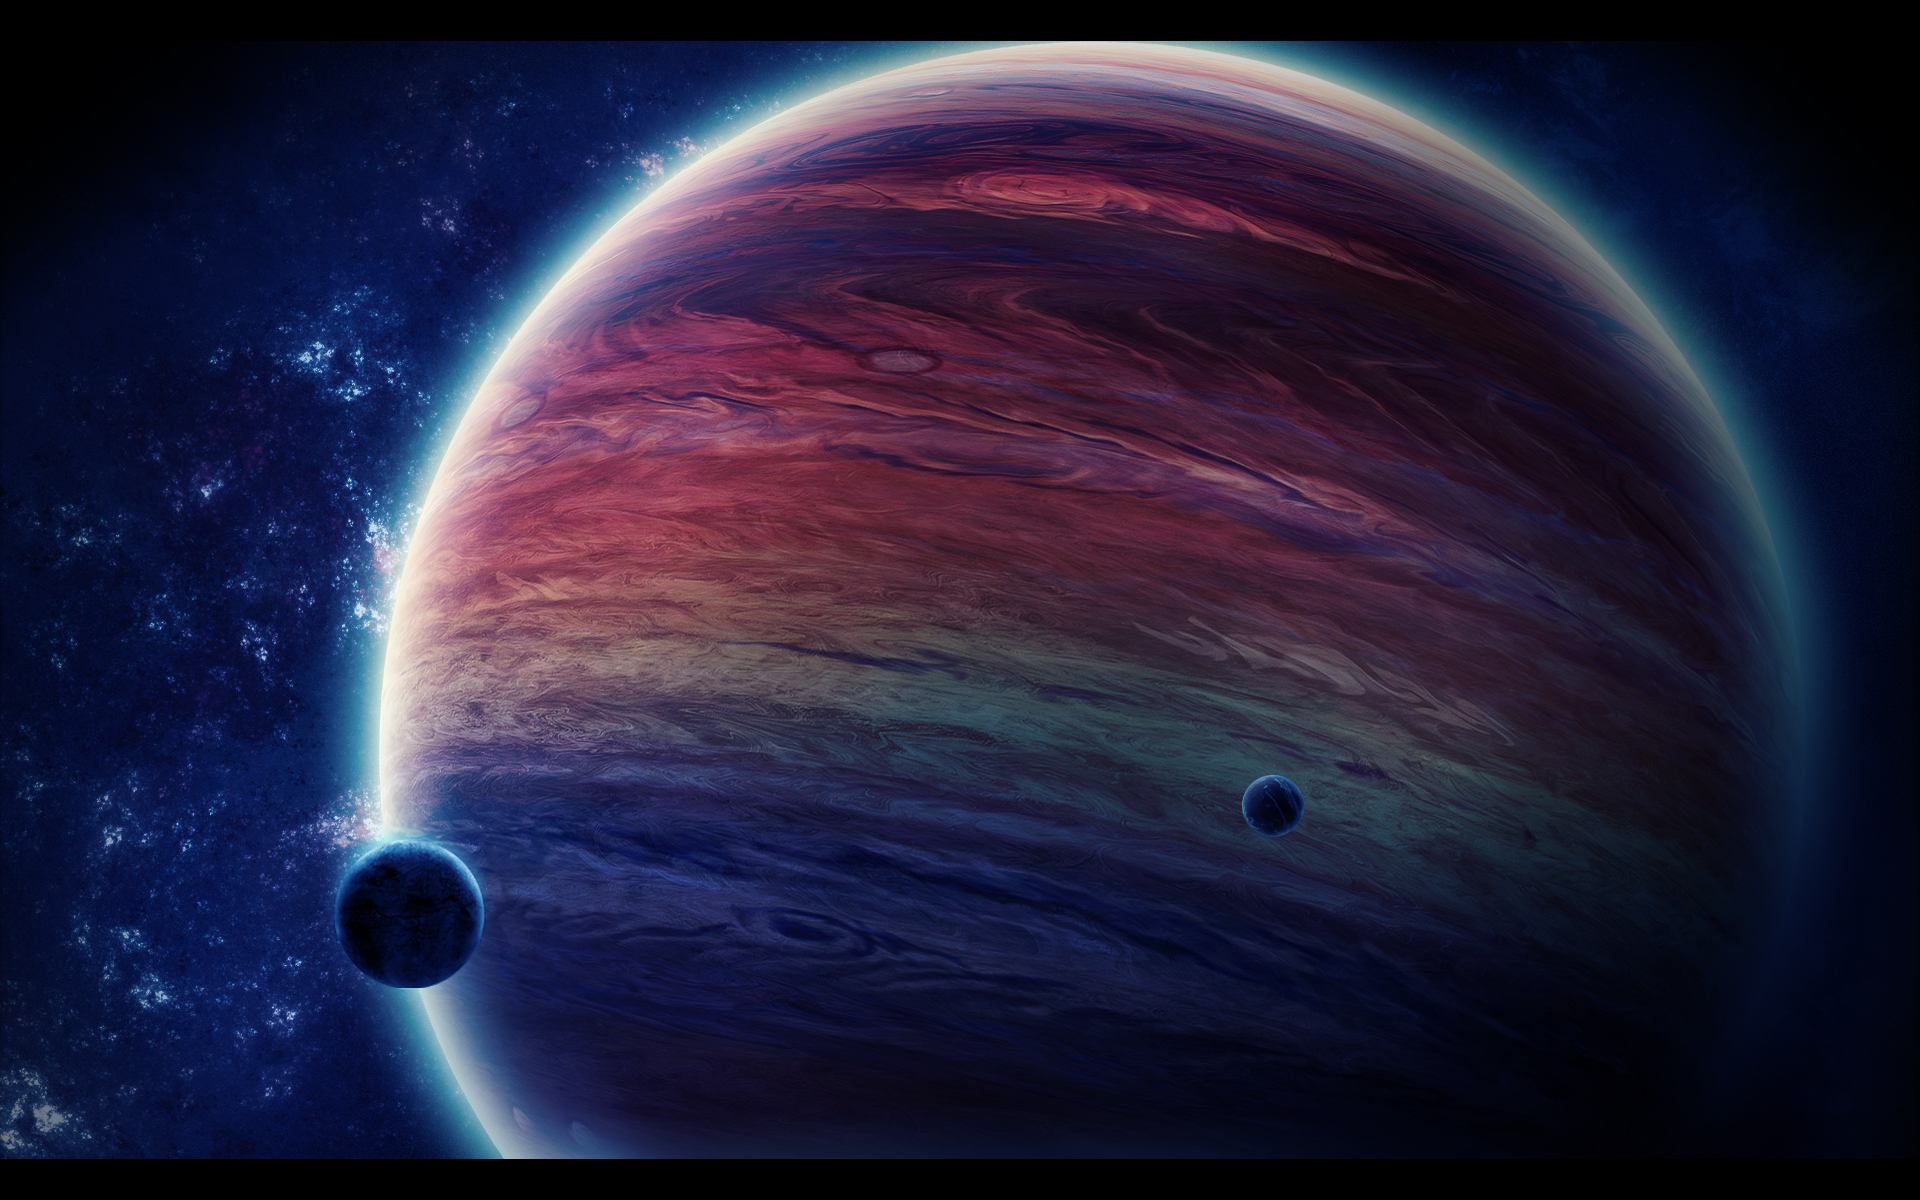 Space Planets Sci-Fi Art